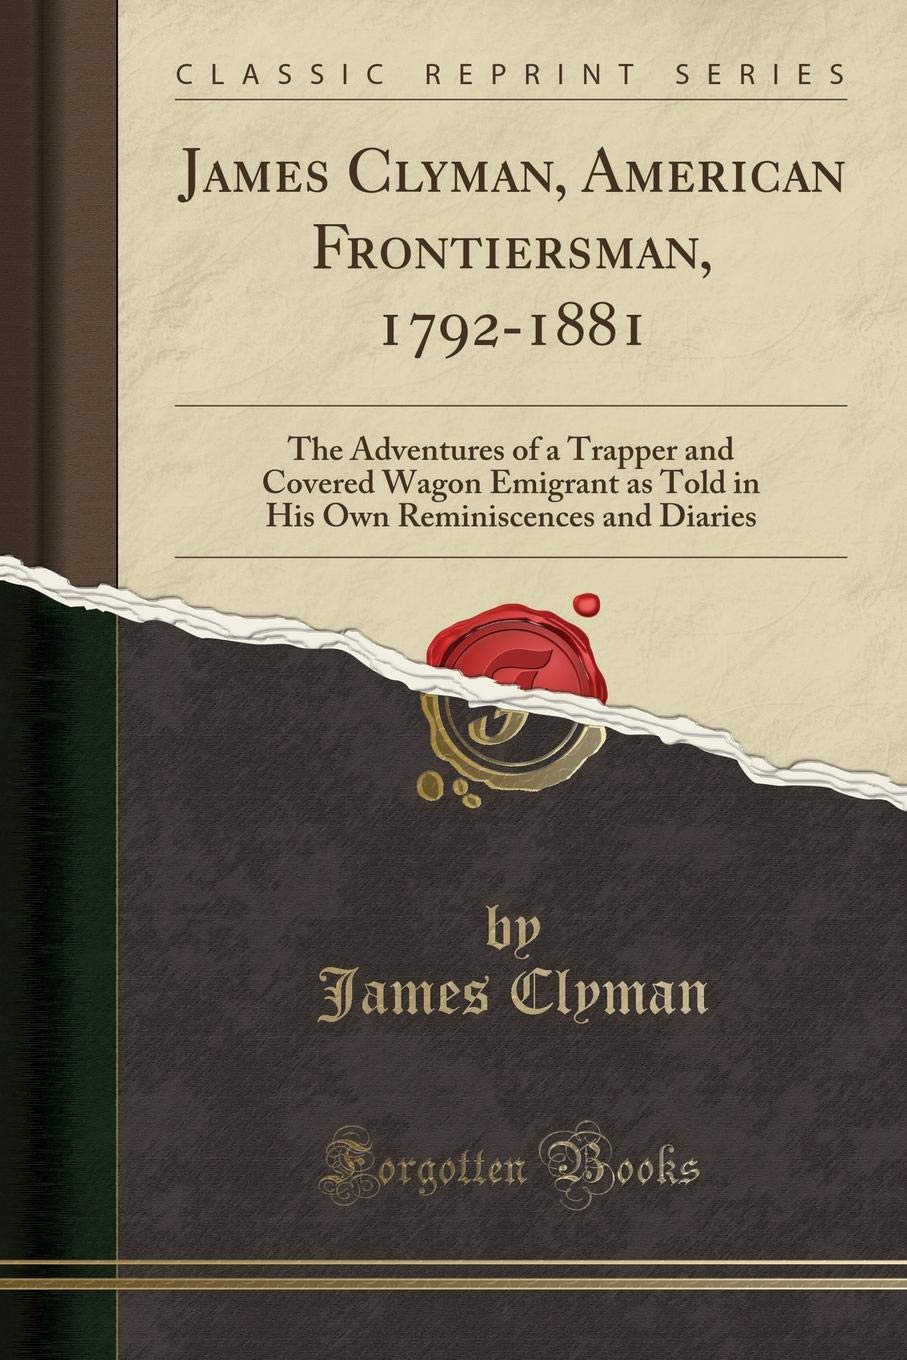 Read Online James Clyman, American Frontiersman, 1792-1881: The Adventures of a Trapper and Covered Wagon Emigrant as Told in His Own Reminiscences and Diaries (Classic Reprint) ebook